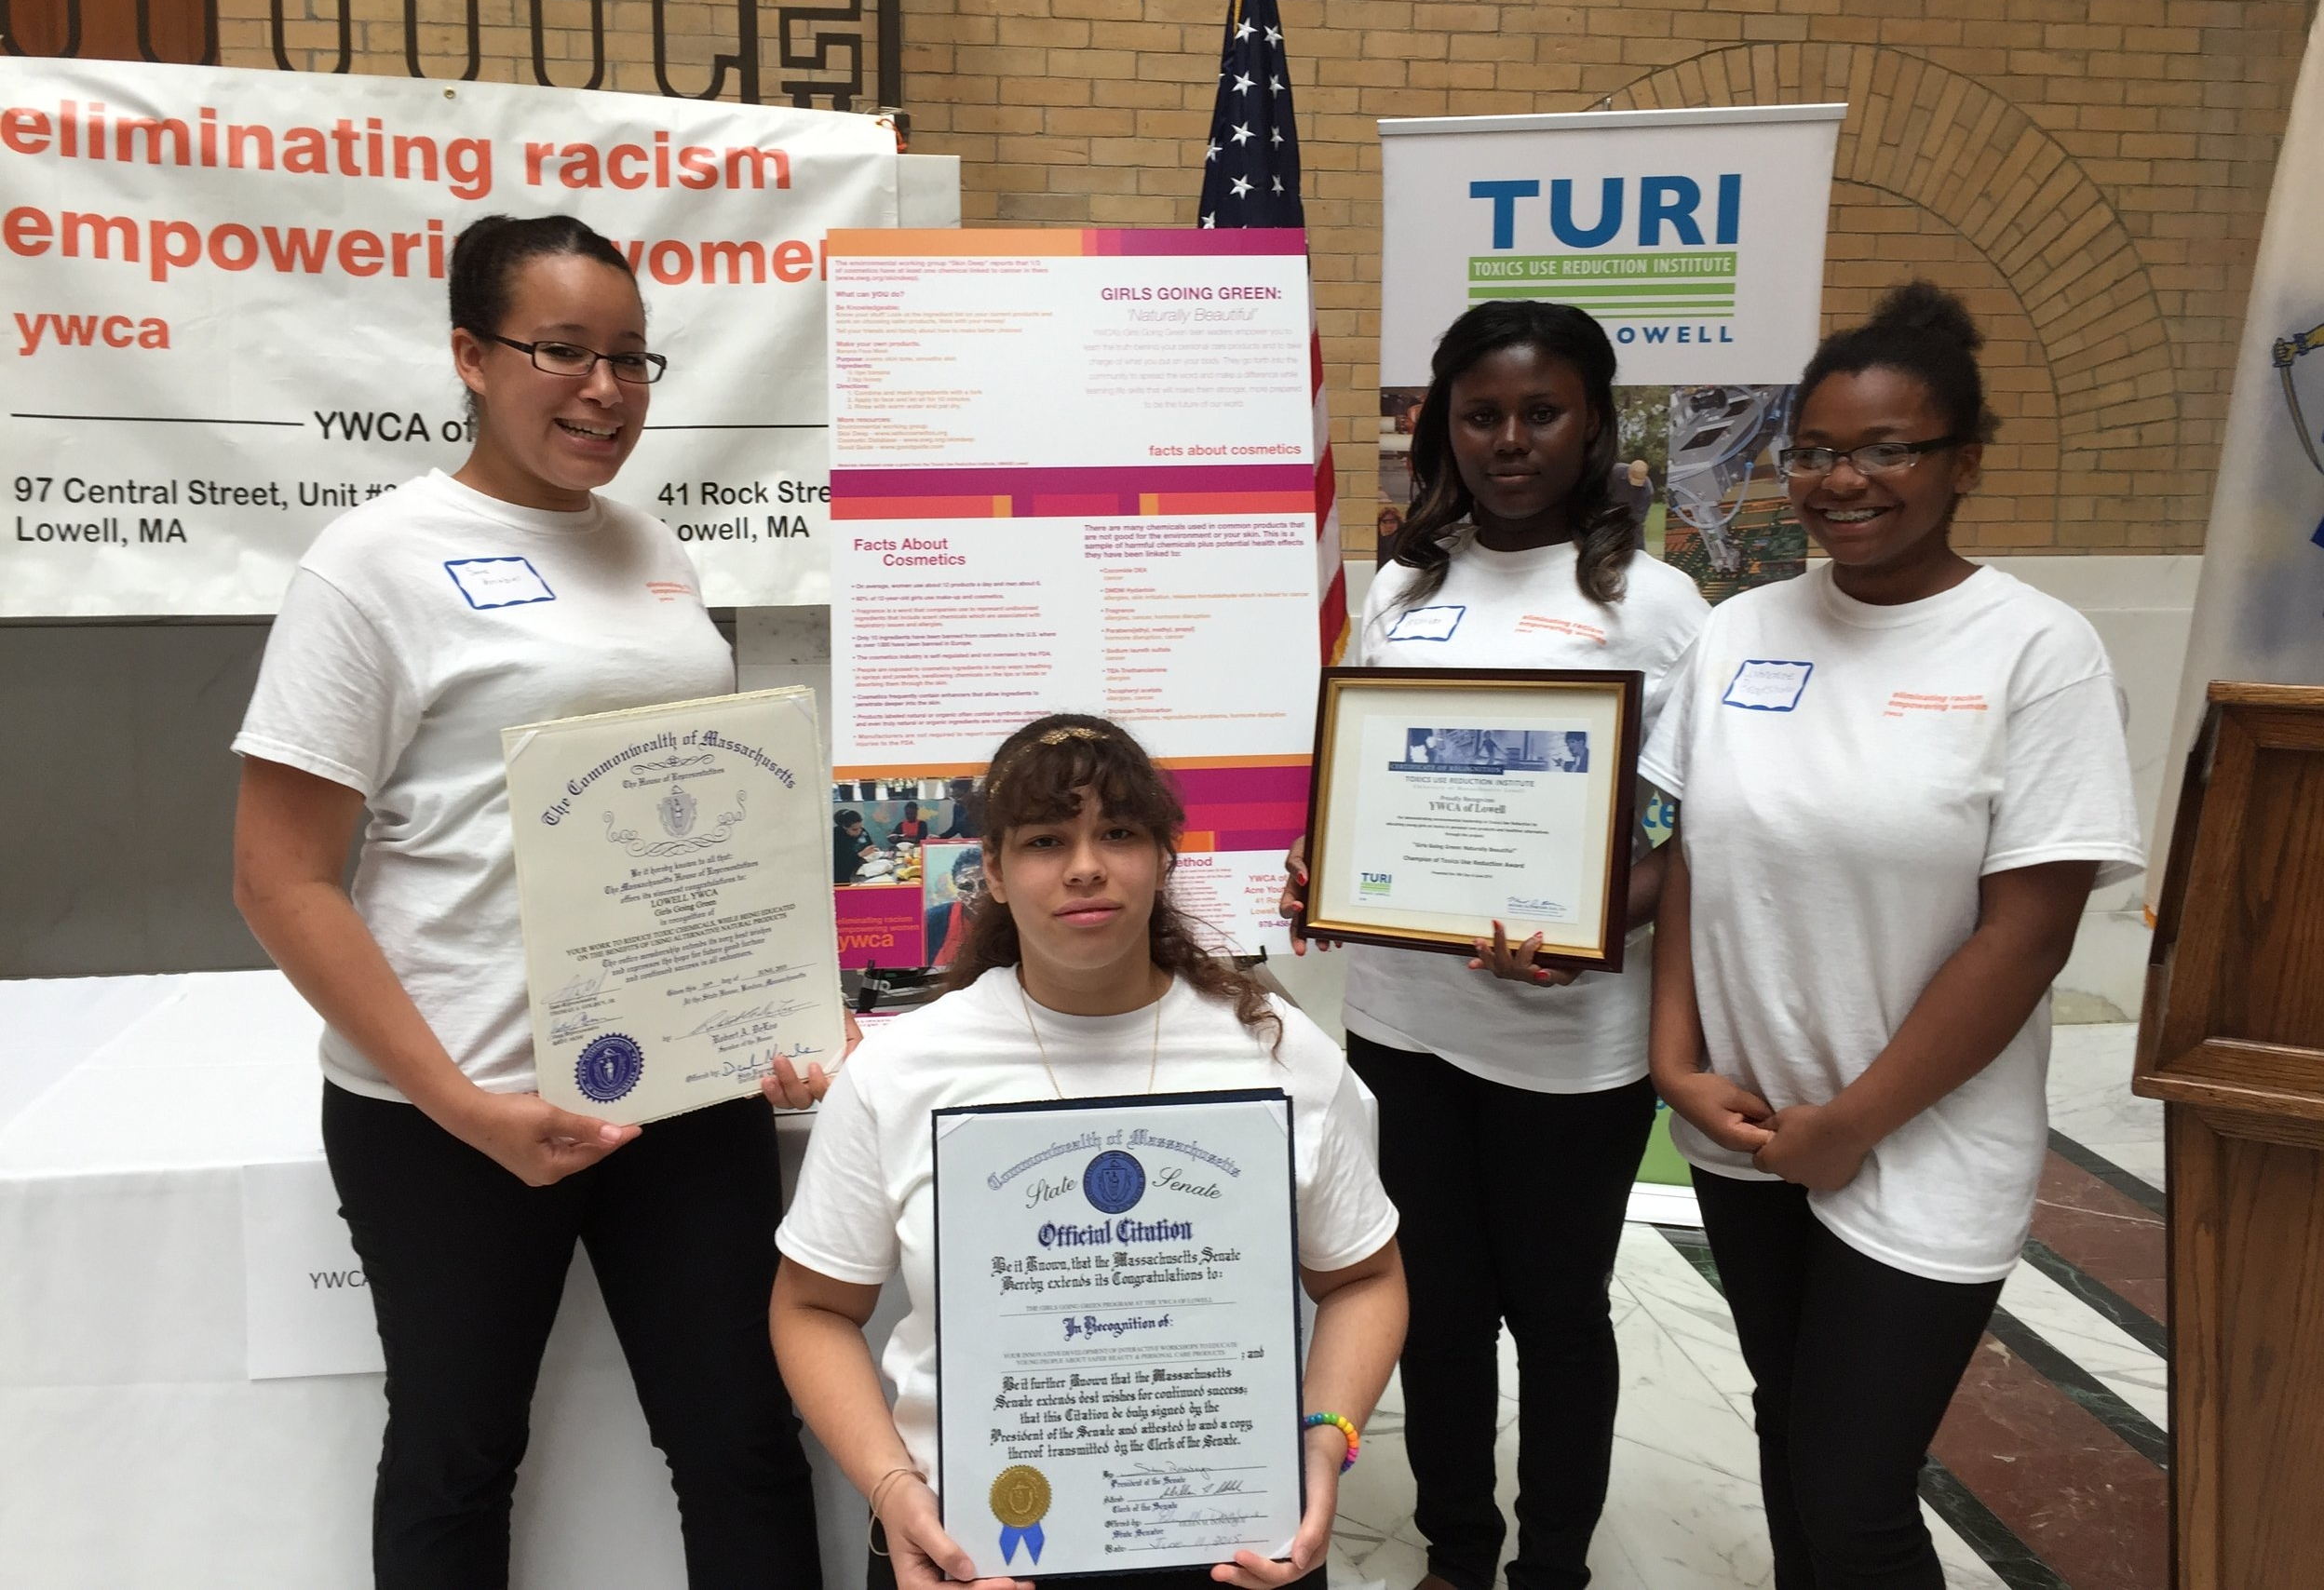 Girls Go Green recognized by the Massachusetts State Senate for their work on toxin reduction